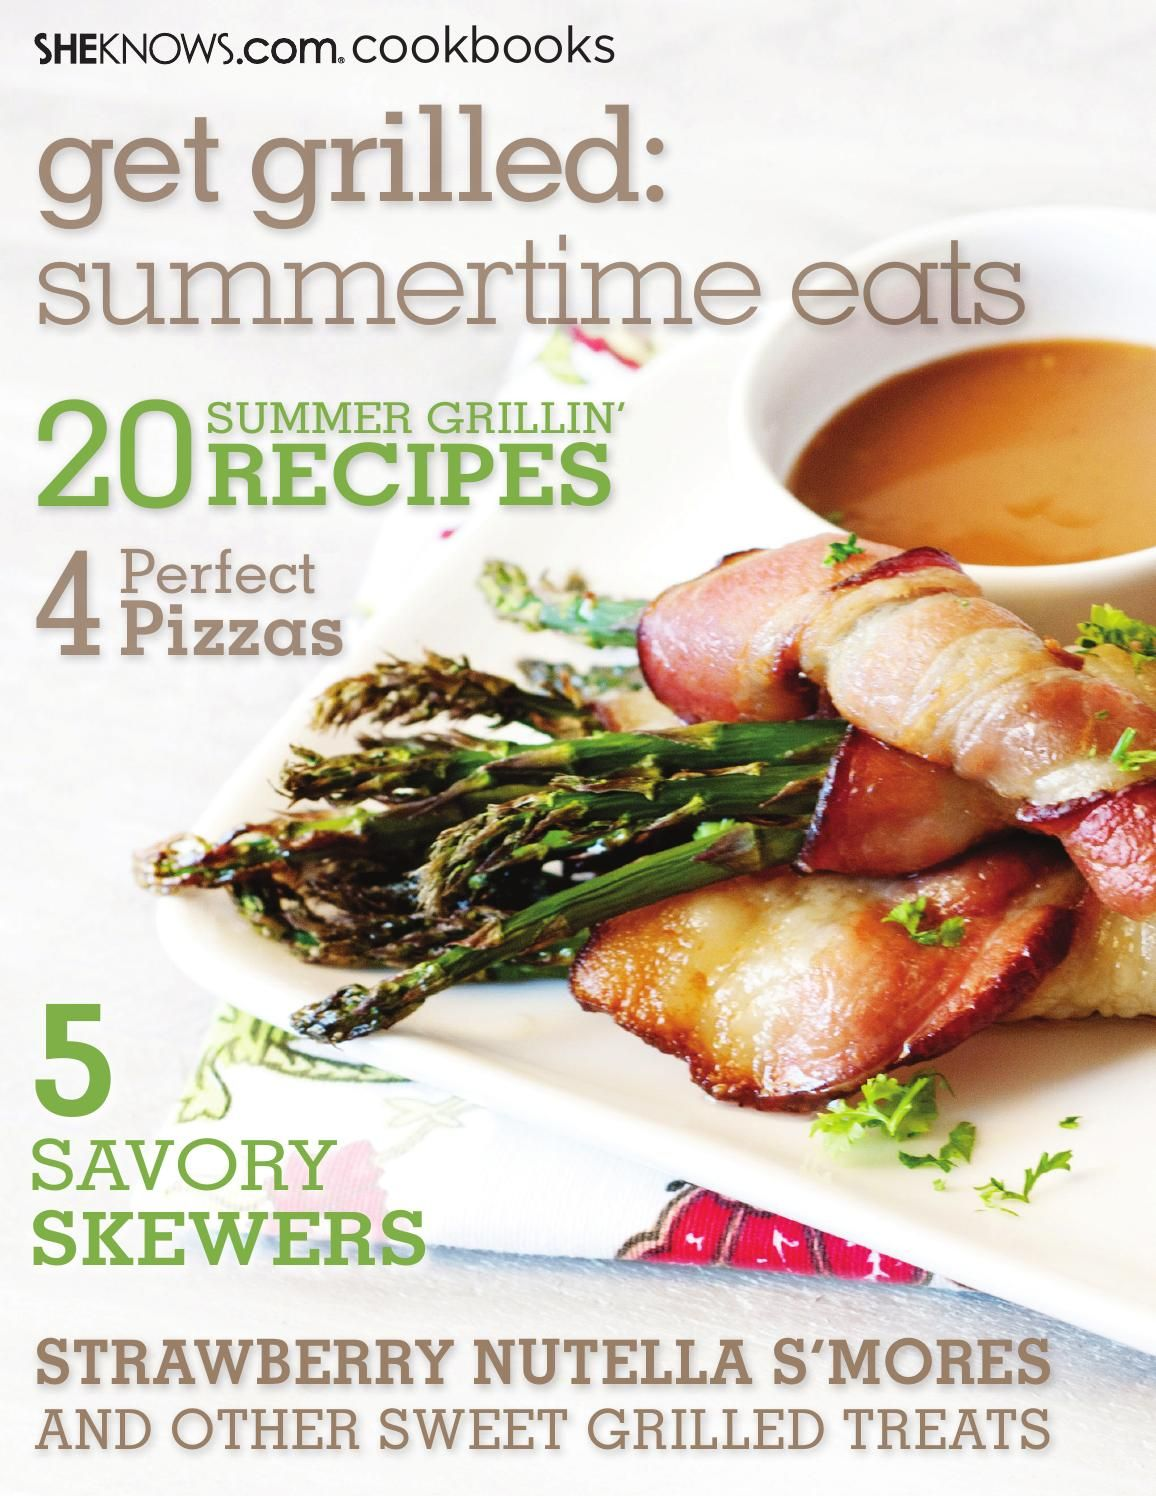 When you're ready to fire up the grill check out our collection of delicious recipes from grilled vegetables and grilled kabobs, to grilled salmon and more.